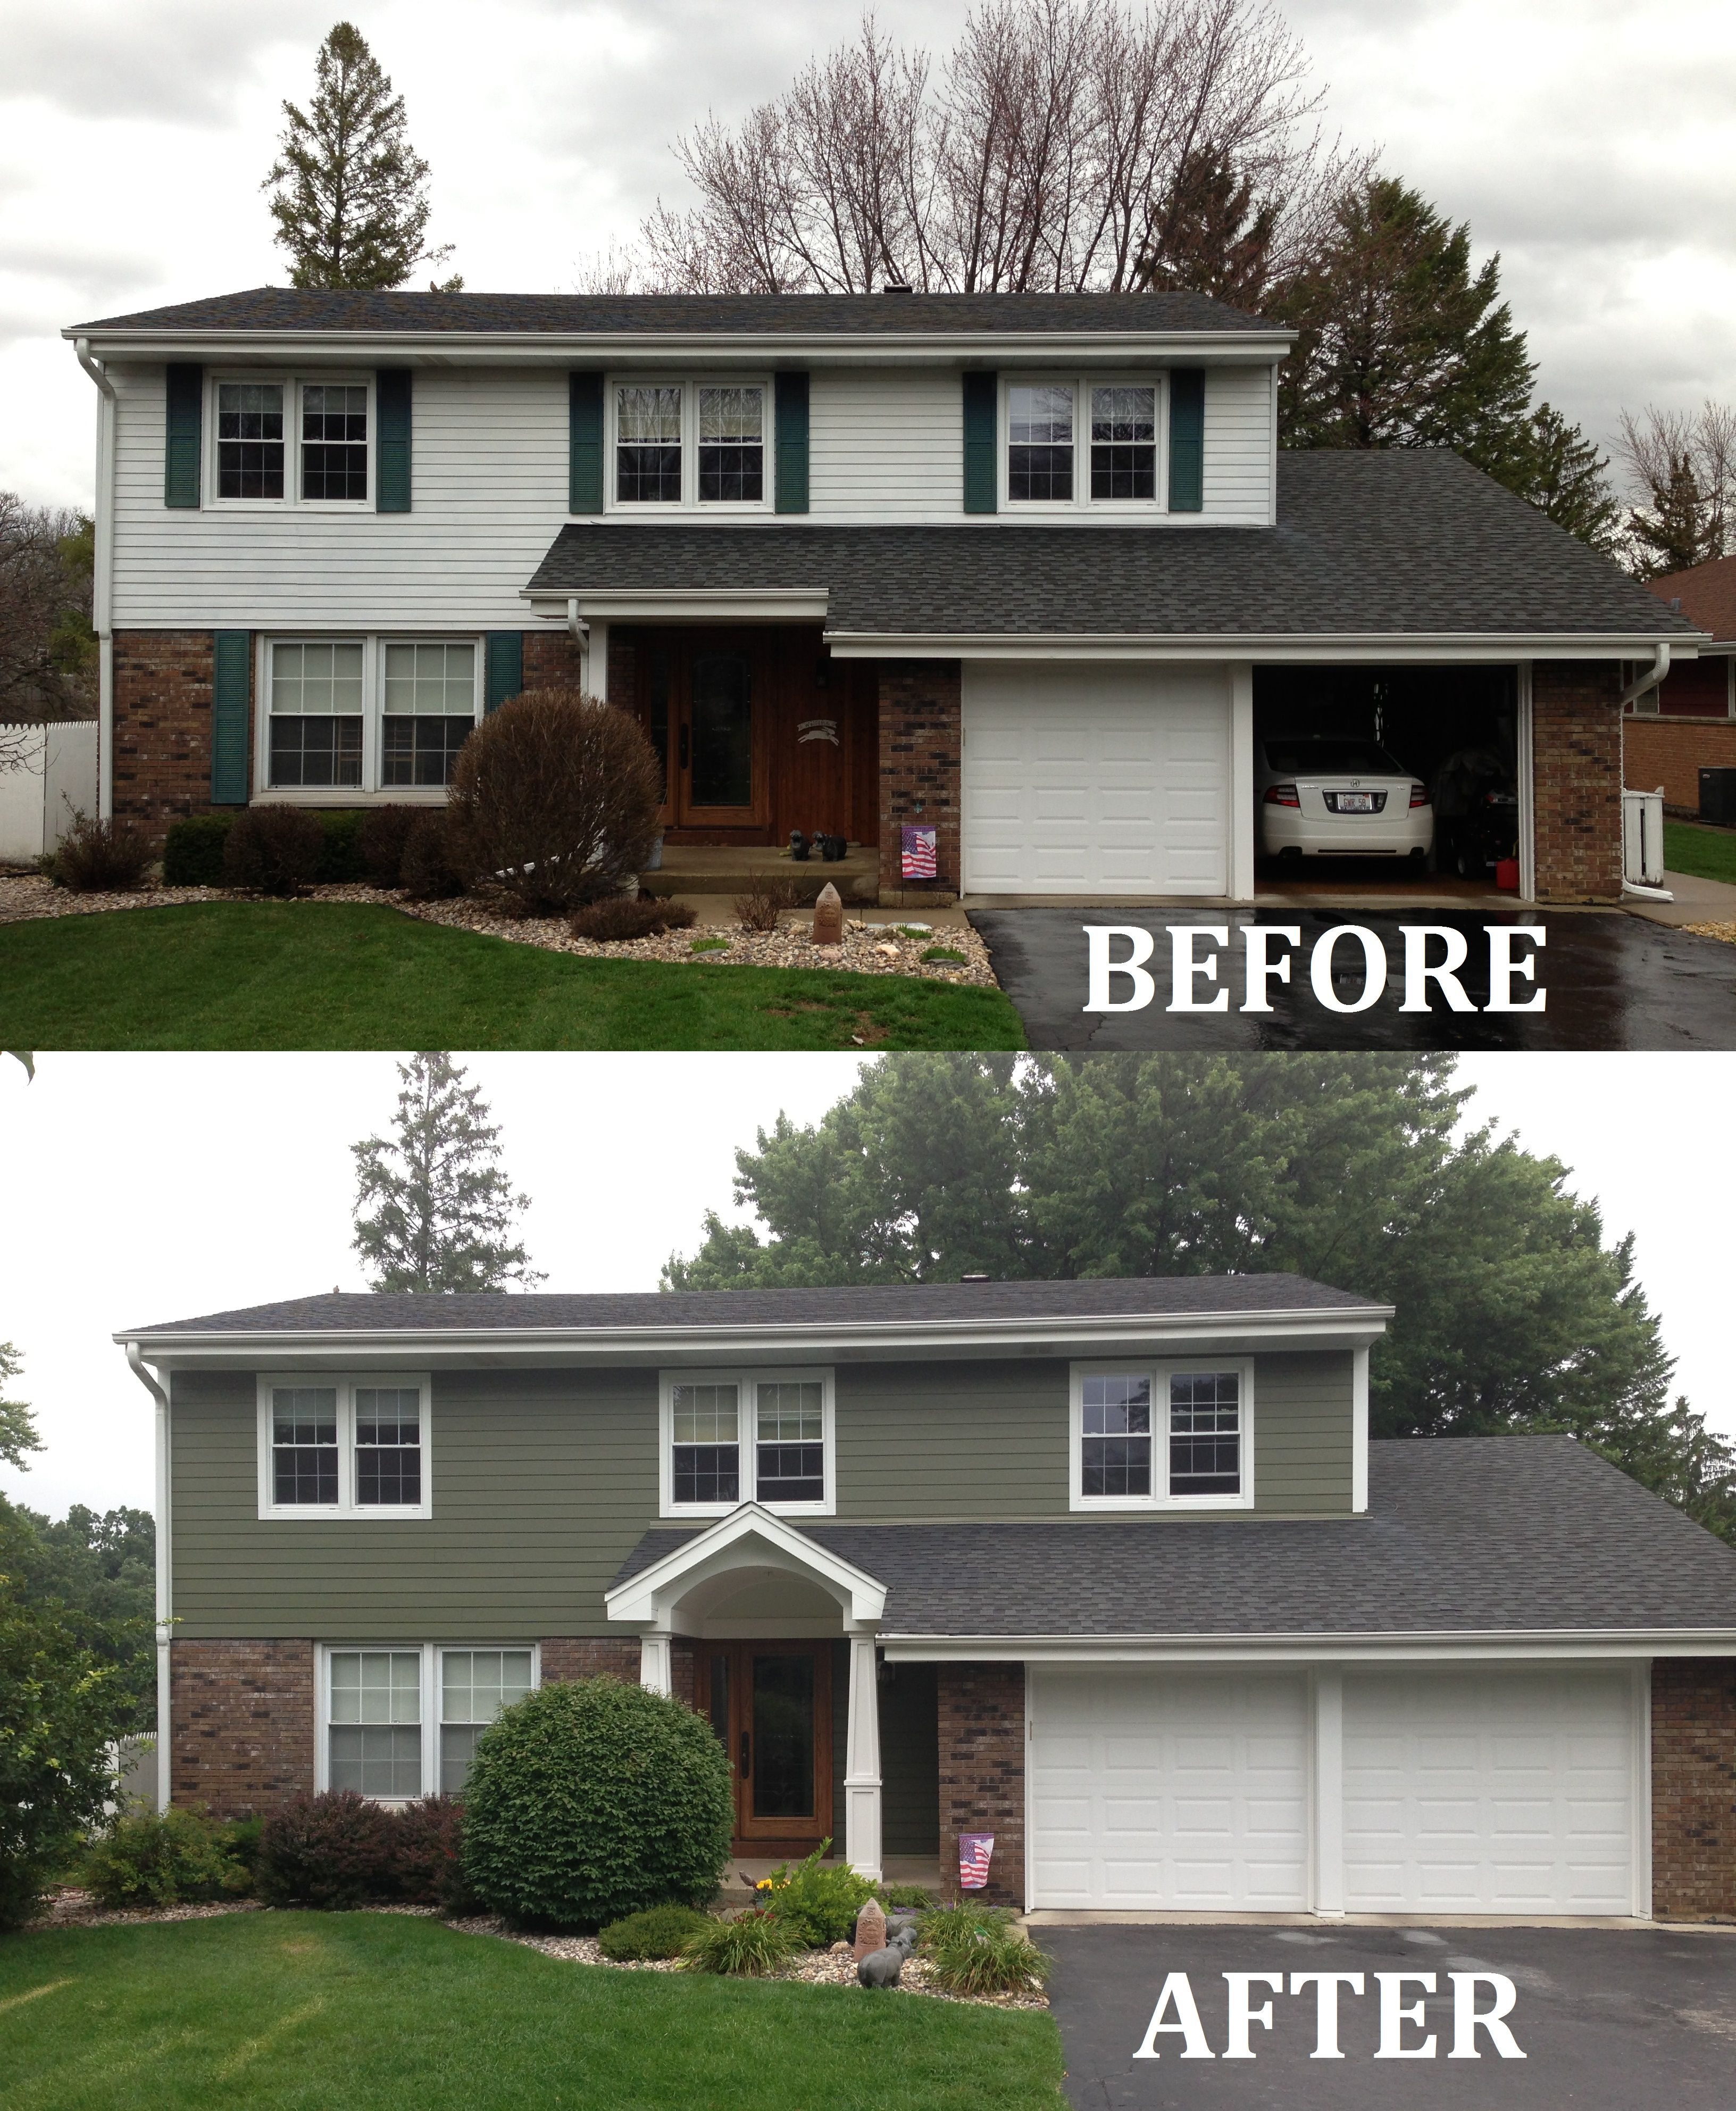 James Hardie Siding And Portico Redesign Arlington Heights Brick Exterior House Red Brick House Exterior Colonial House Exteriors